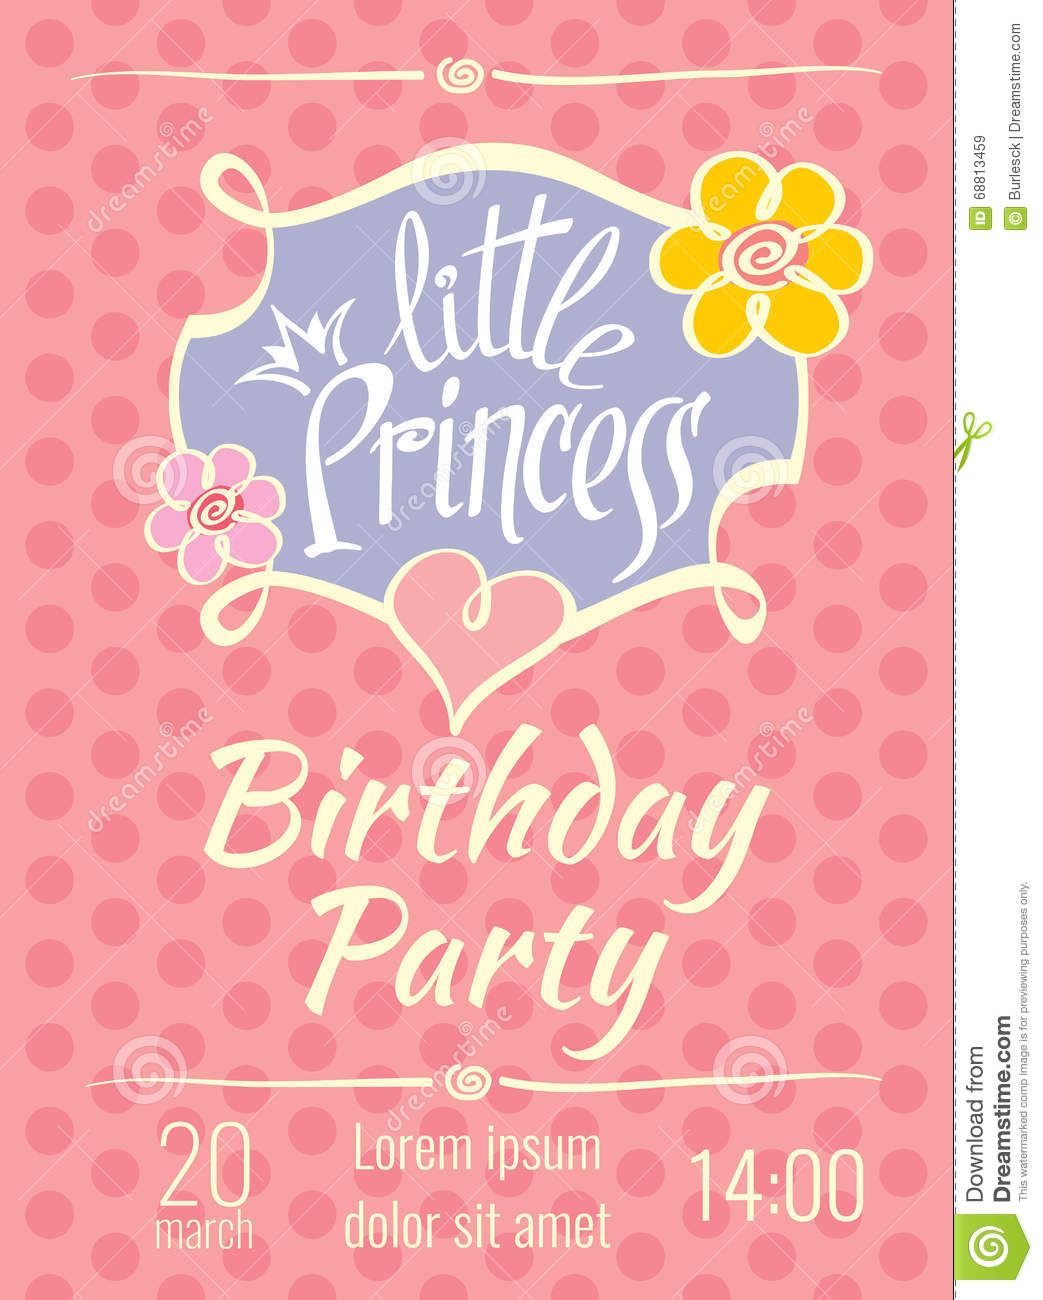 Birthday invitation card templates romeondinez little princess birthday party vector poster or invitation card birthday invitation card templates stopboris Gallery